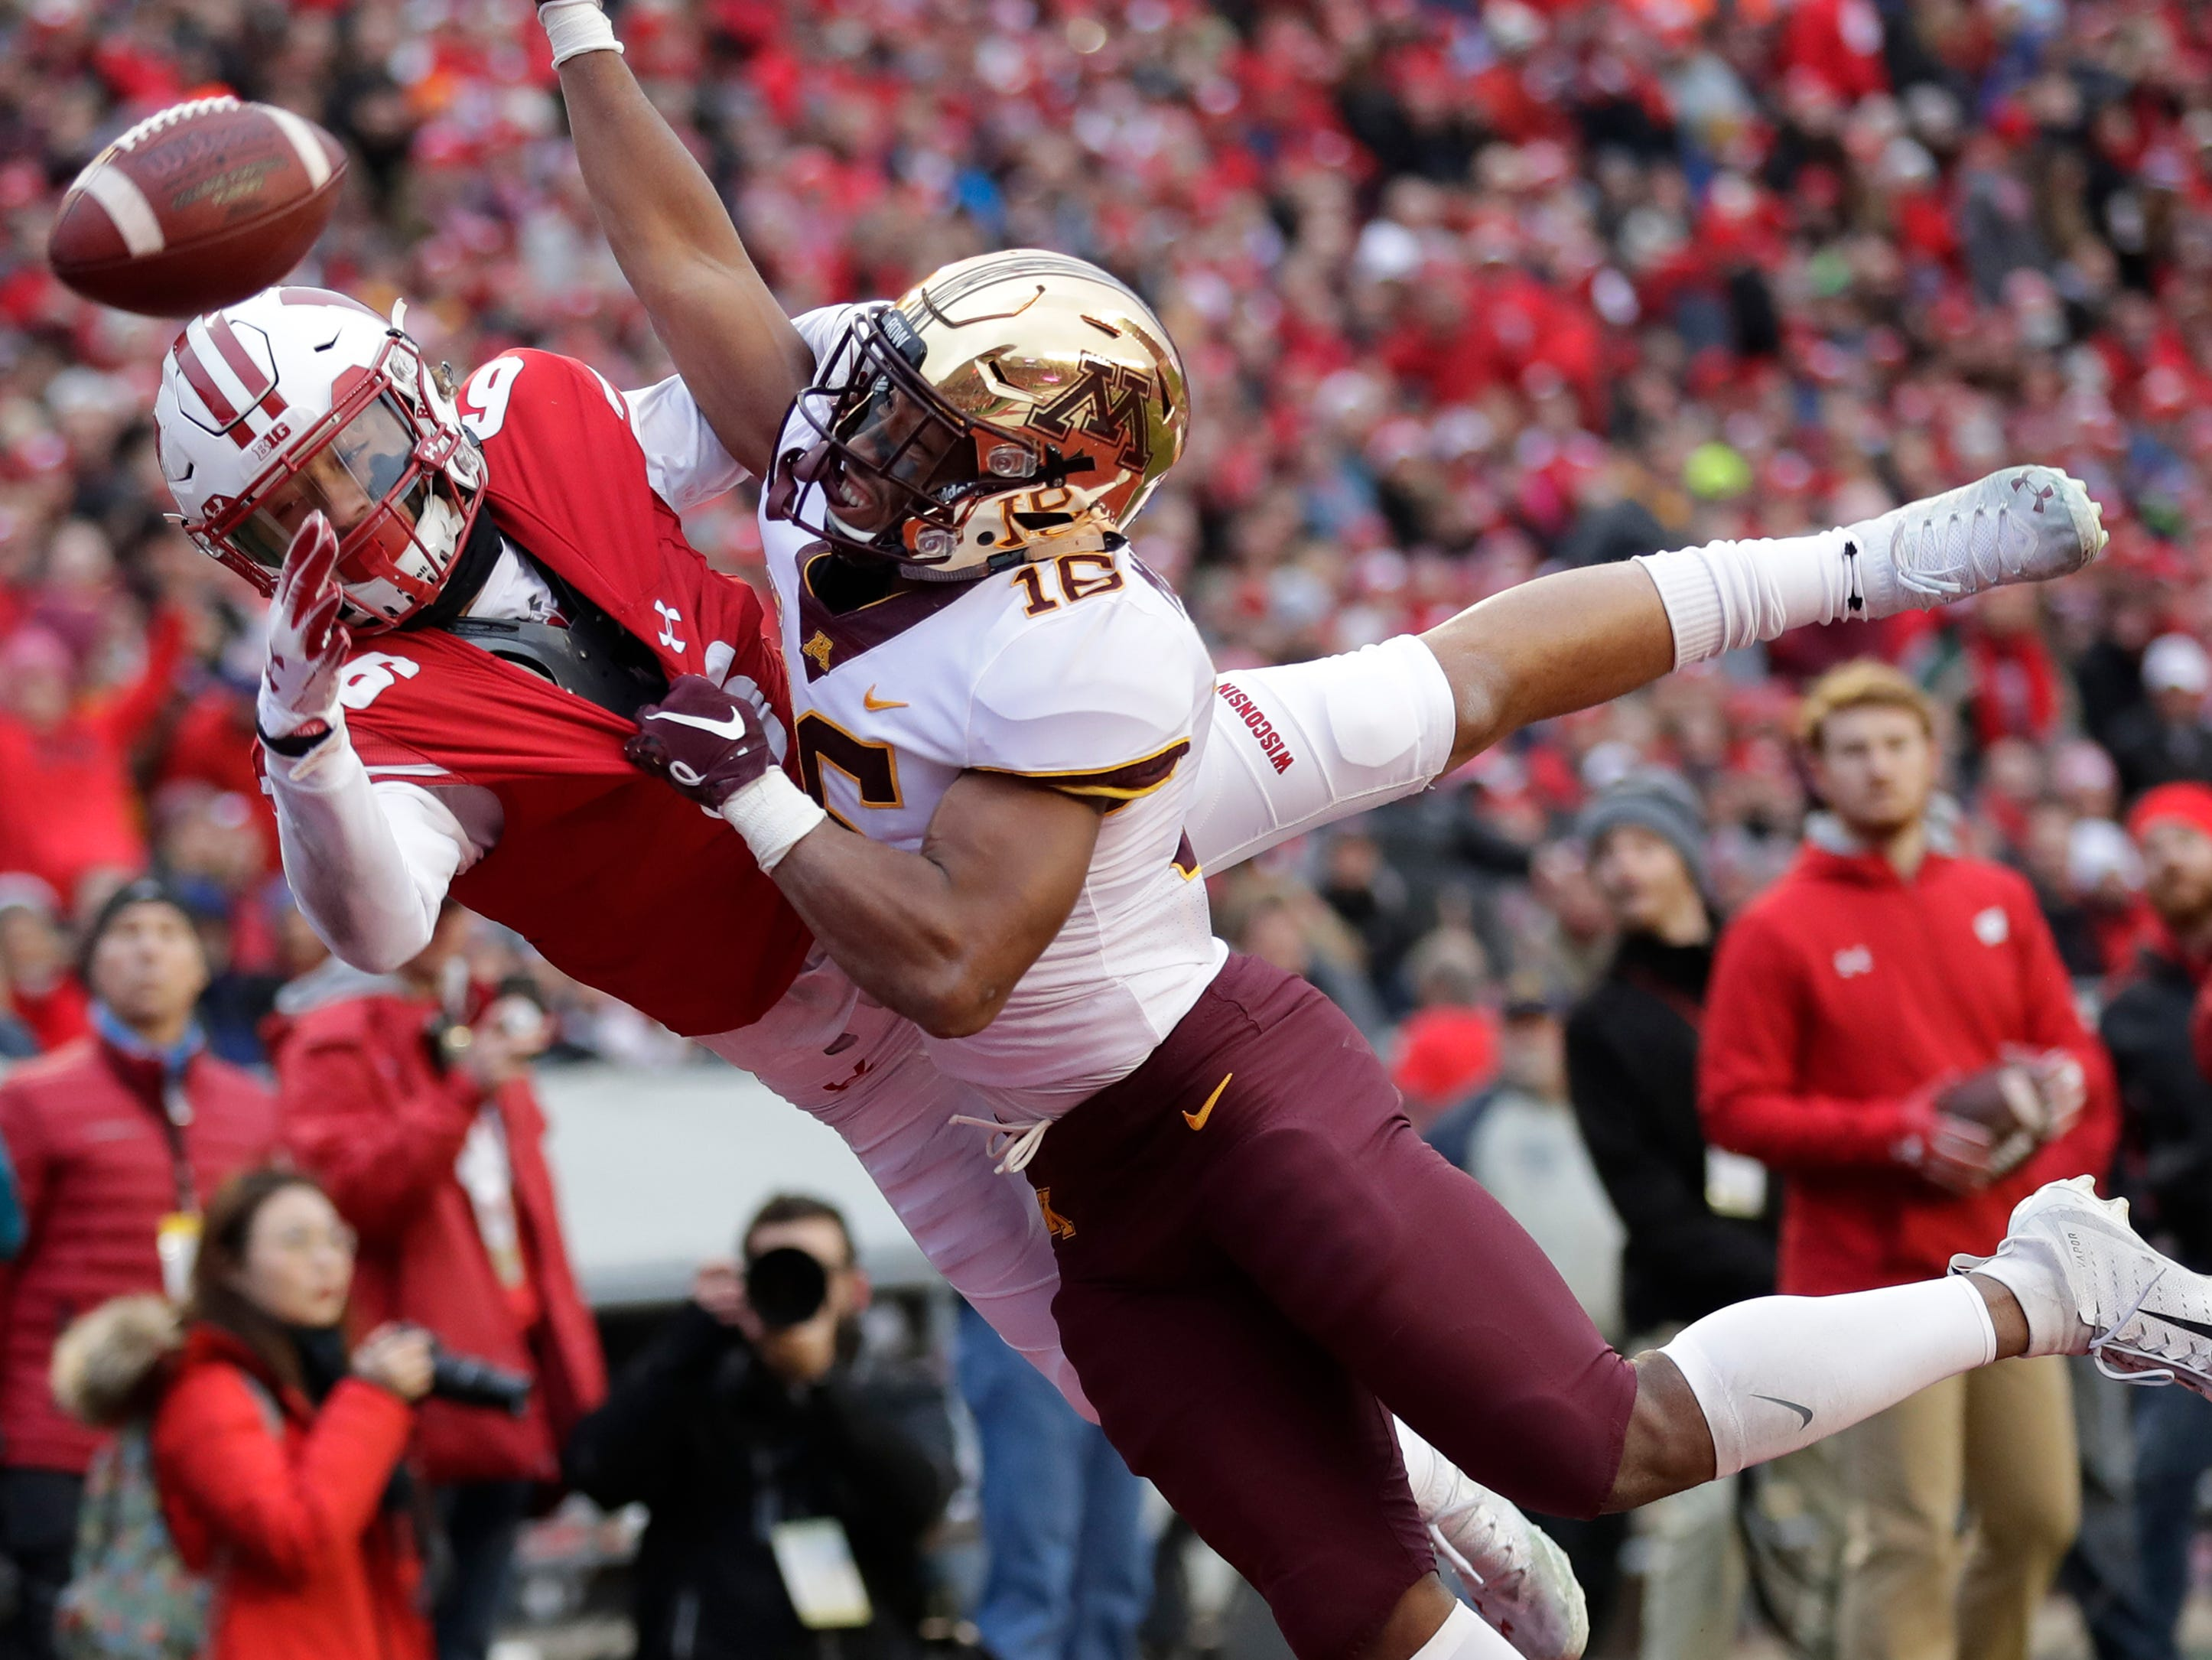 Minnesota defensive back Coney Durr (16) breaks up a pass in the endzone intended for Wisconsin wide receiver Danny Davis III (6) during the first quarter Saturday, November 24, 2018, at Camp Randall Stadium in Madison, Wis. Dan Powers/USA TODAY NETWORK-Wisconsin